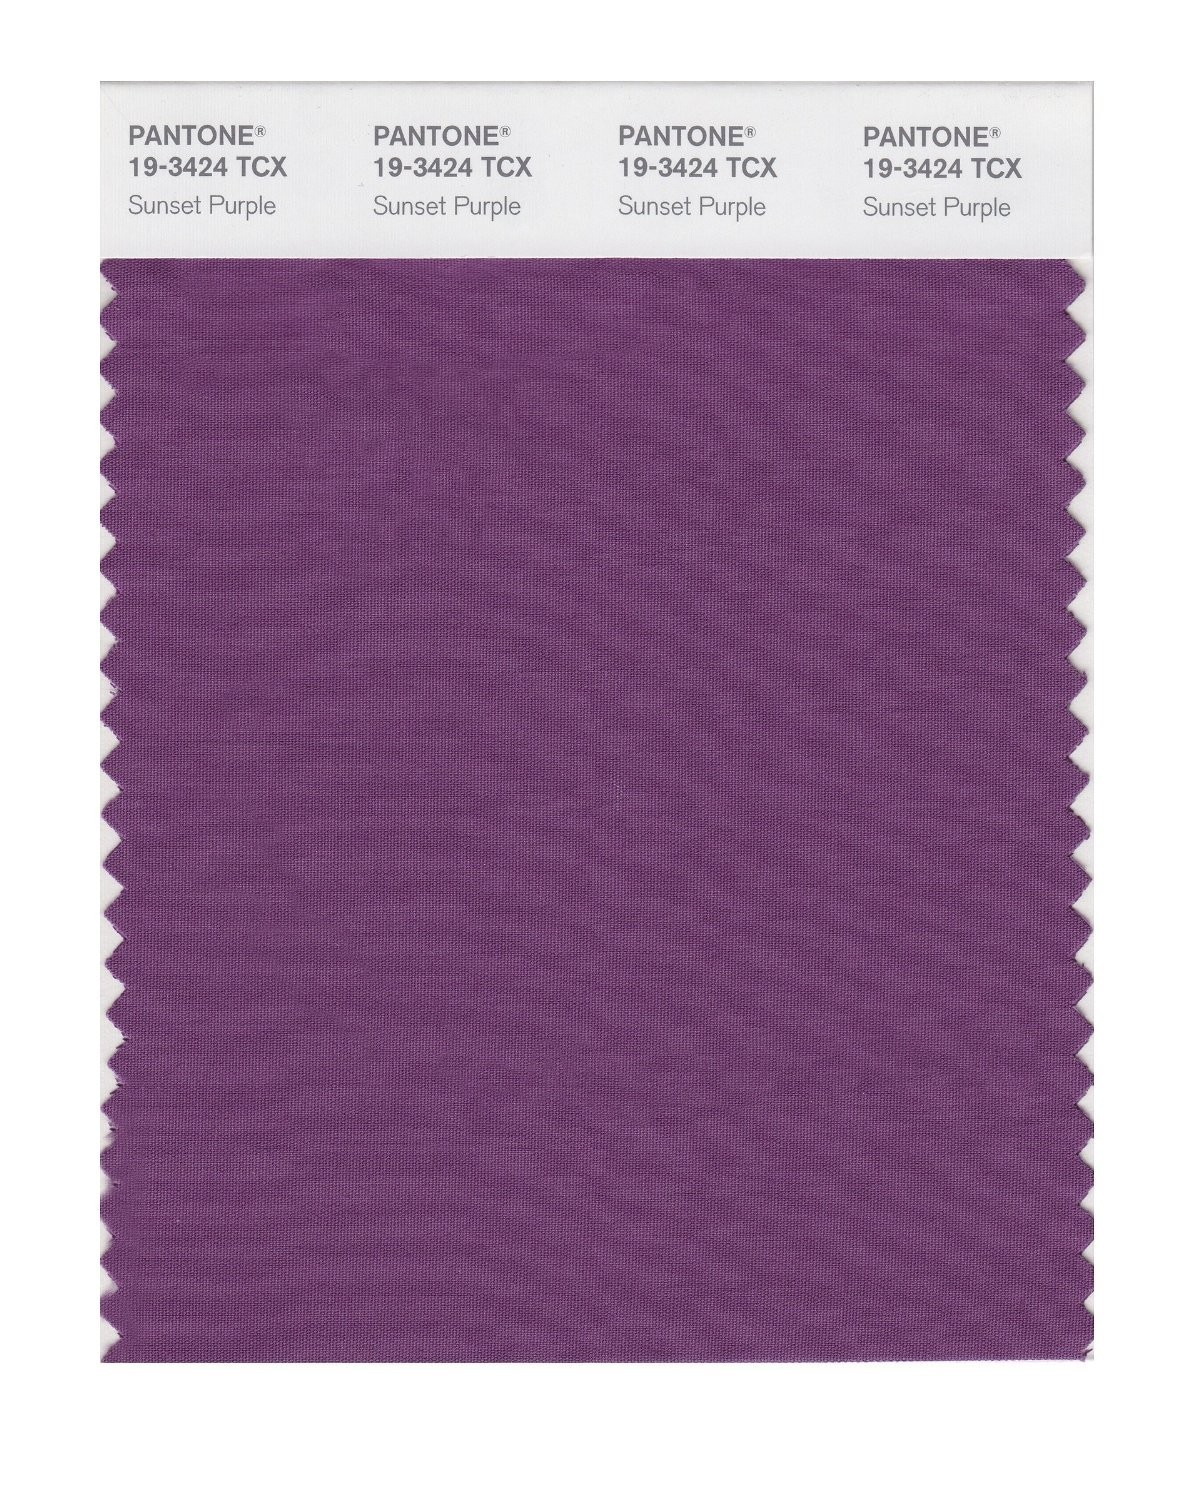 Pantone 19-3424 TCX Swatch Card Sunset Purple